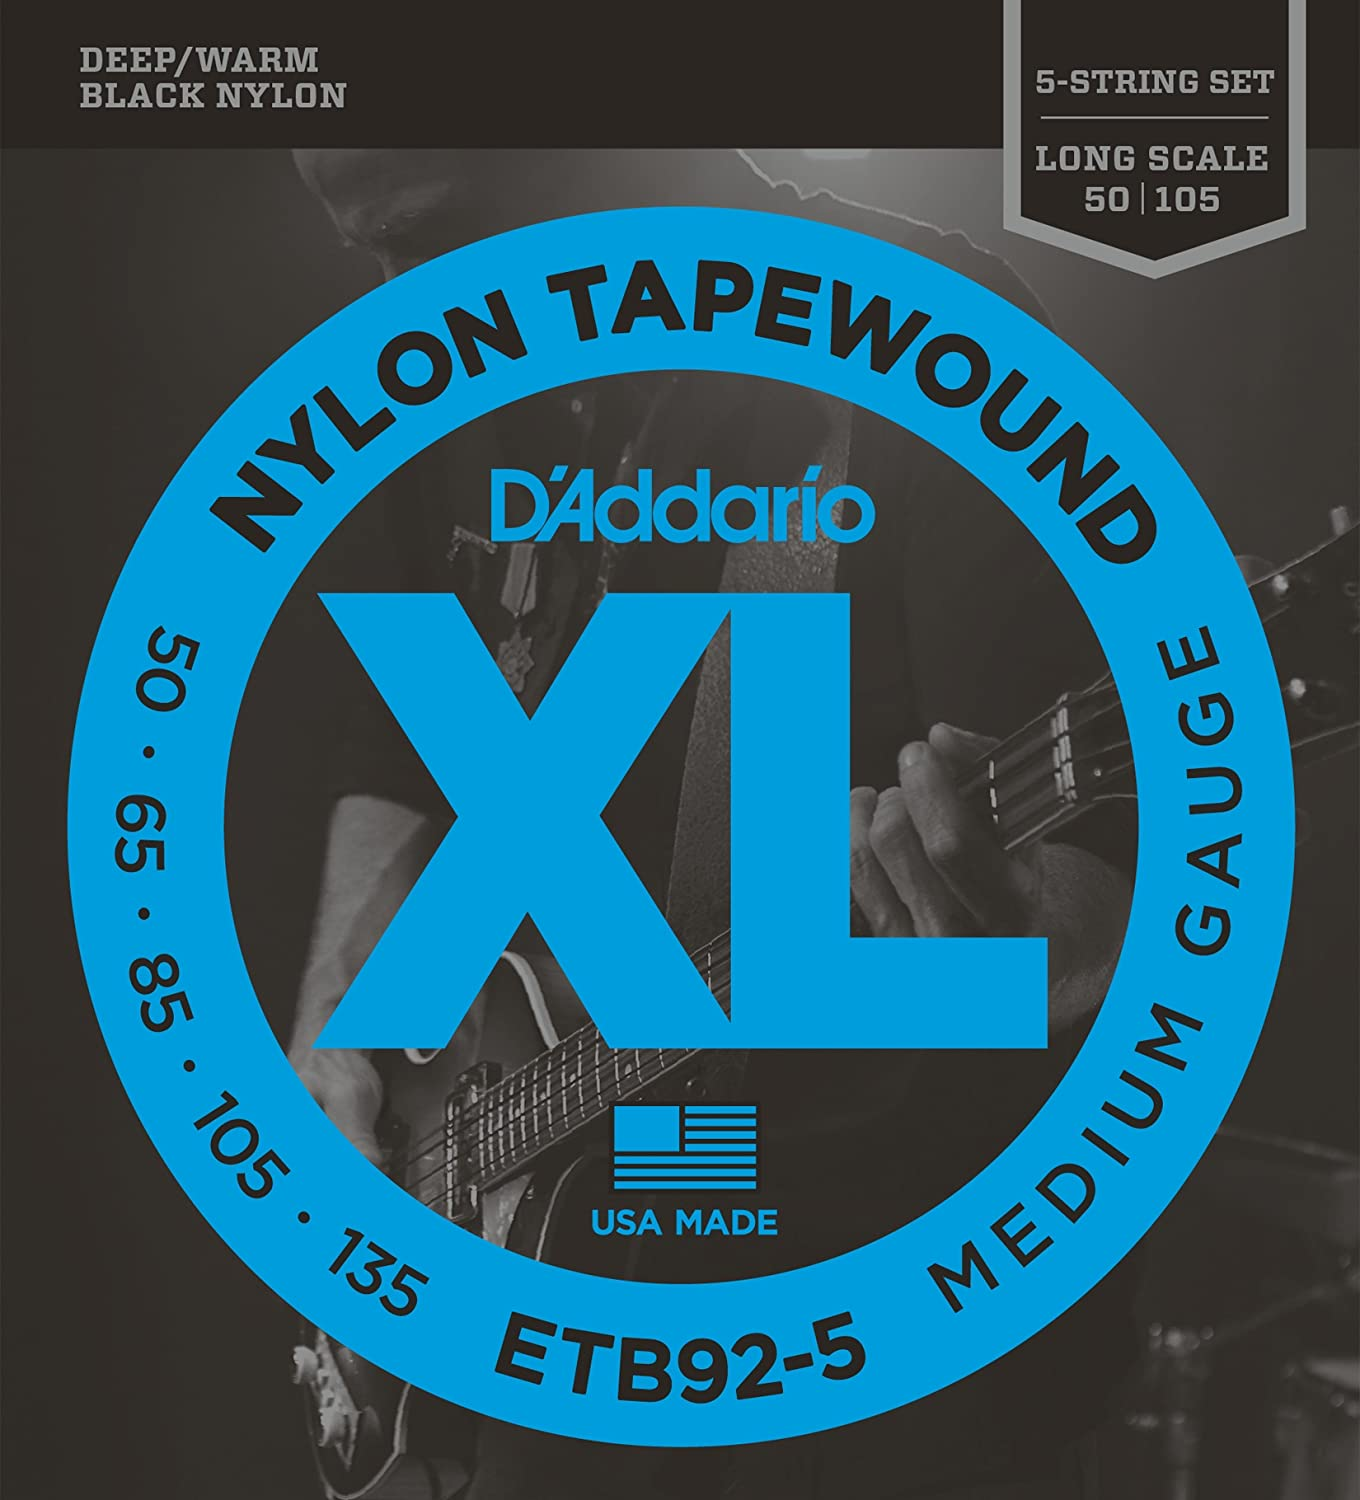 D'Addario ETB92 Tapewound Bass Guitar Strings, Medium, 50-105, Long Scale D'Addario &Co. Inc